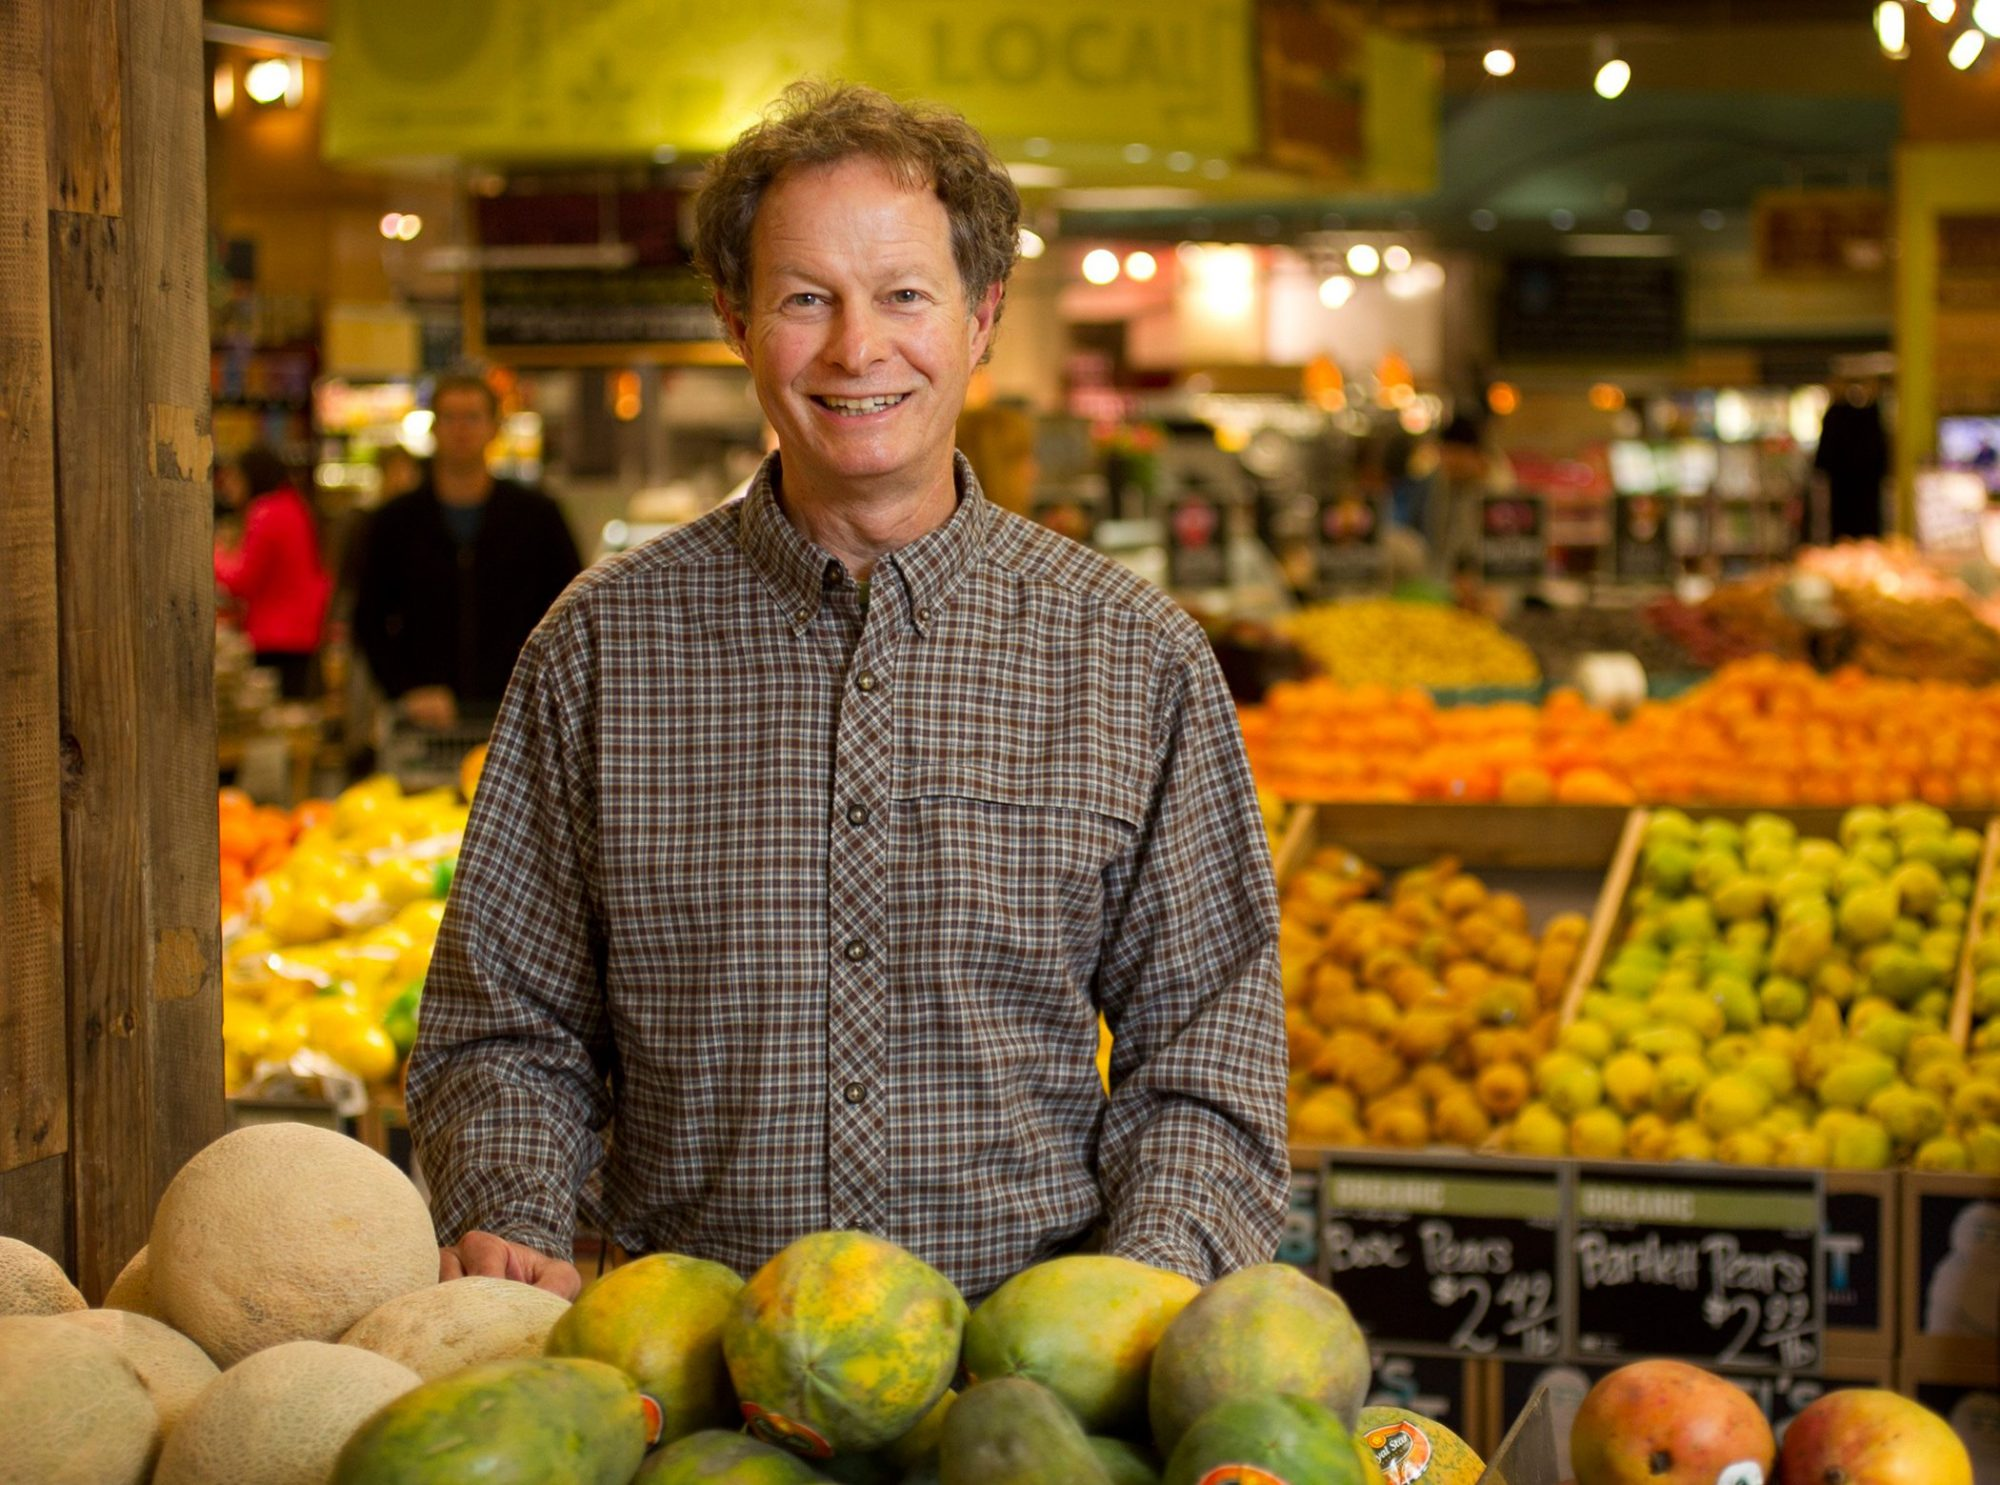 Whole Foods CEO John Mackey on Monday Dec. 31, 2012.